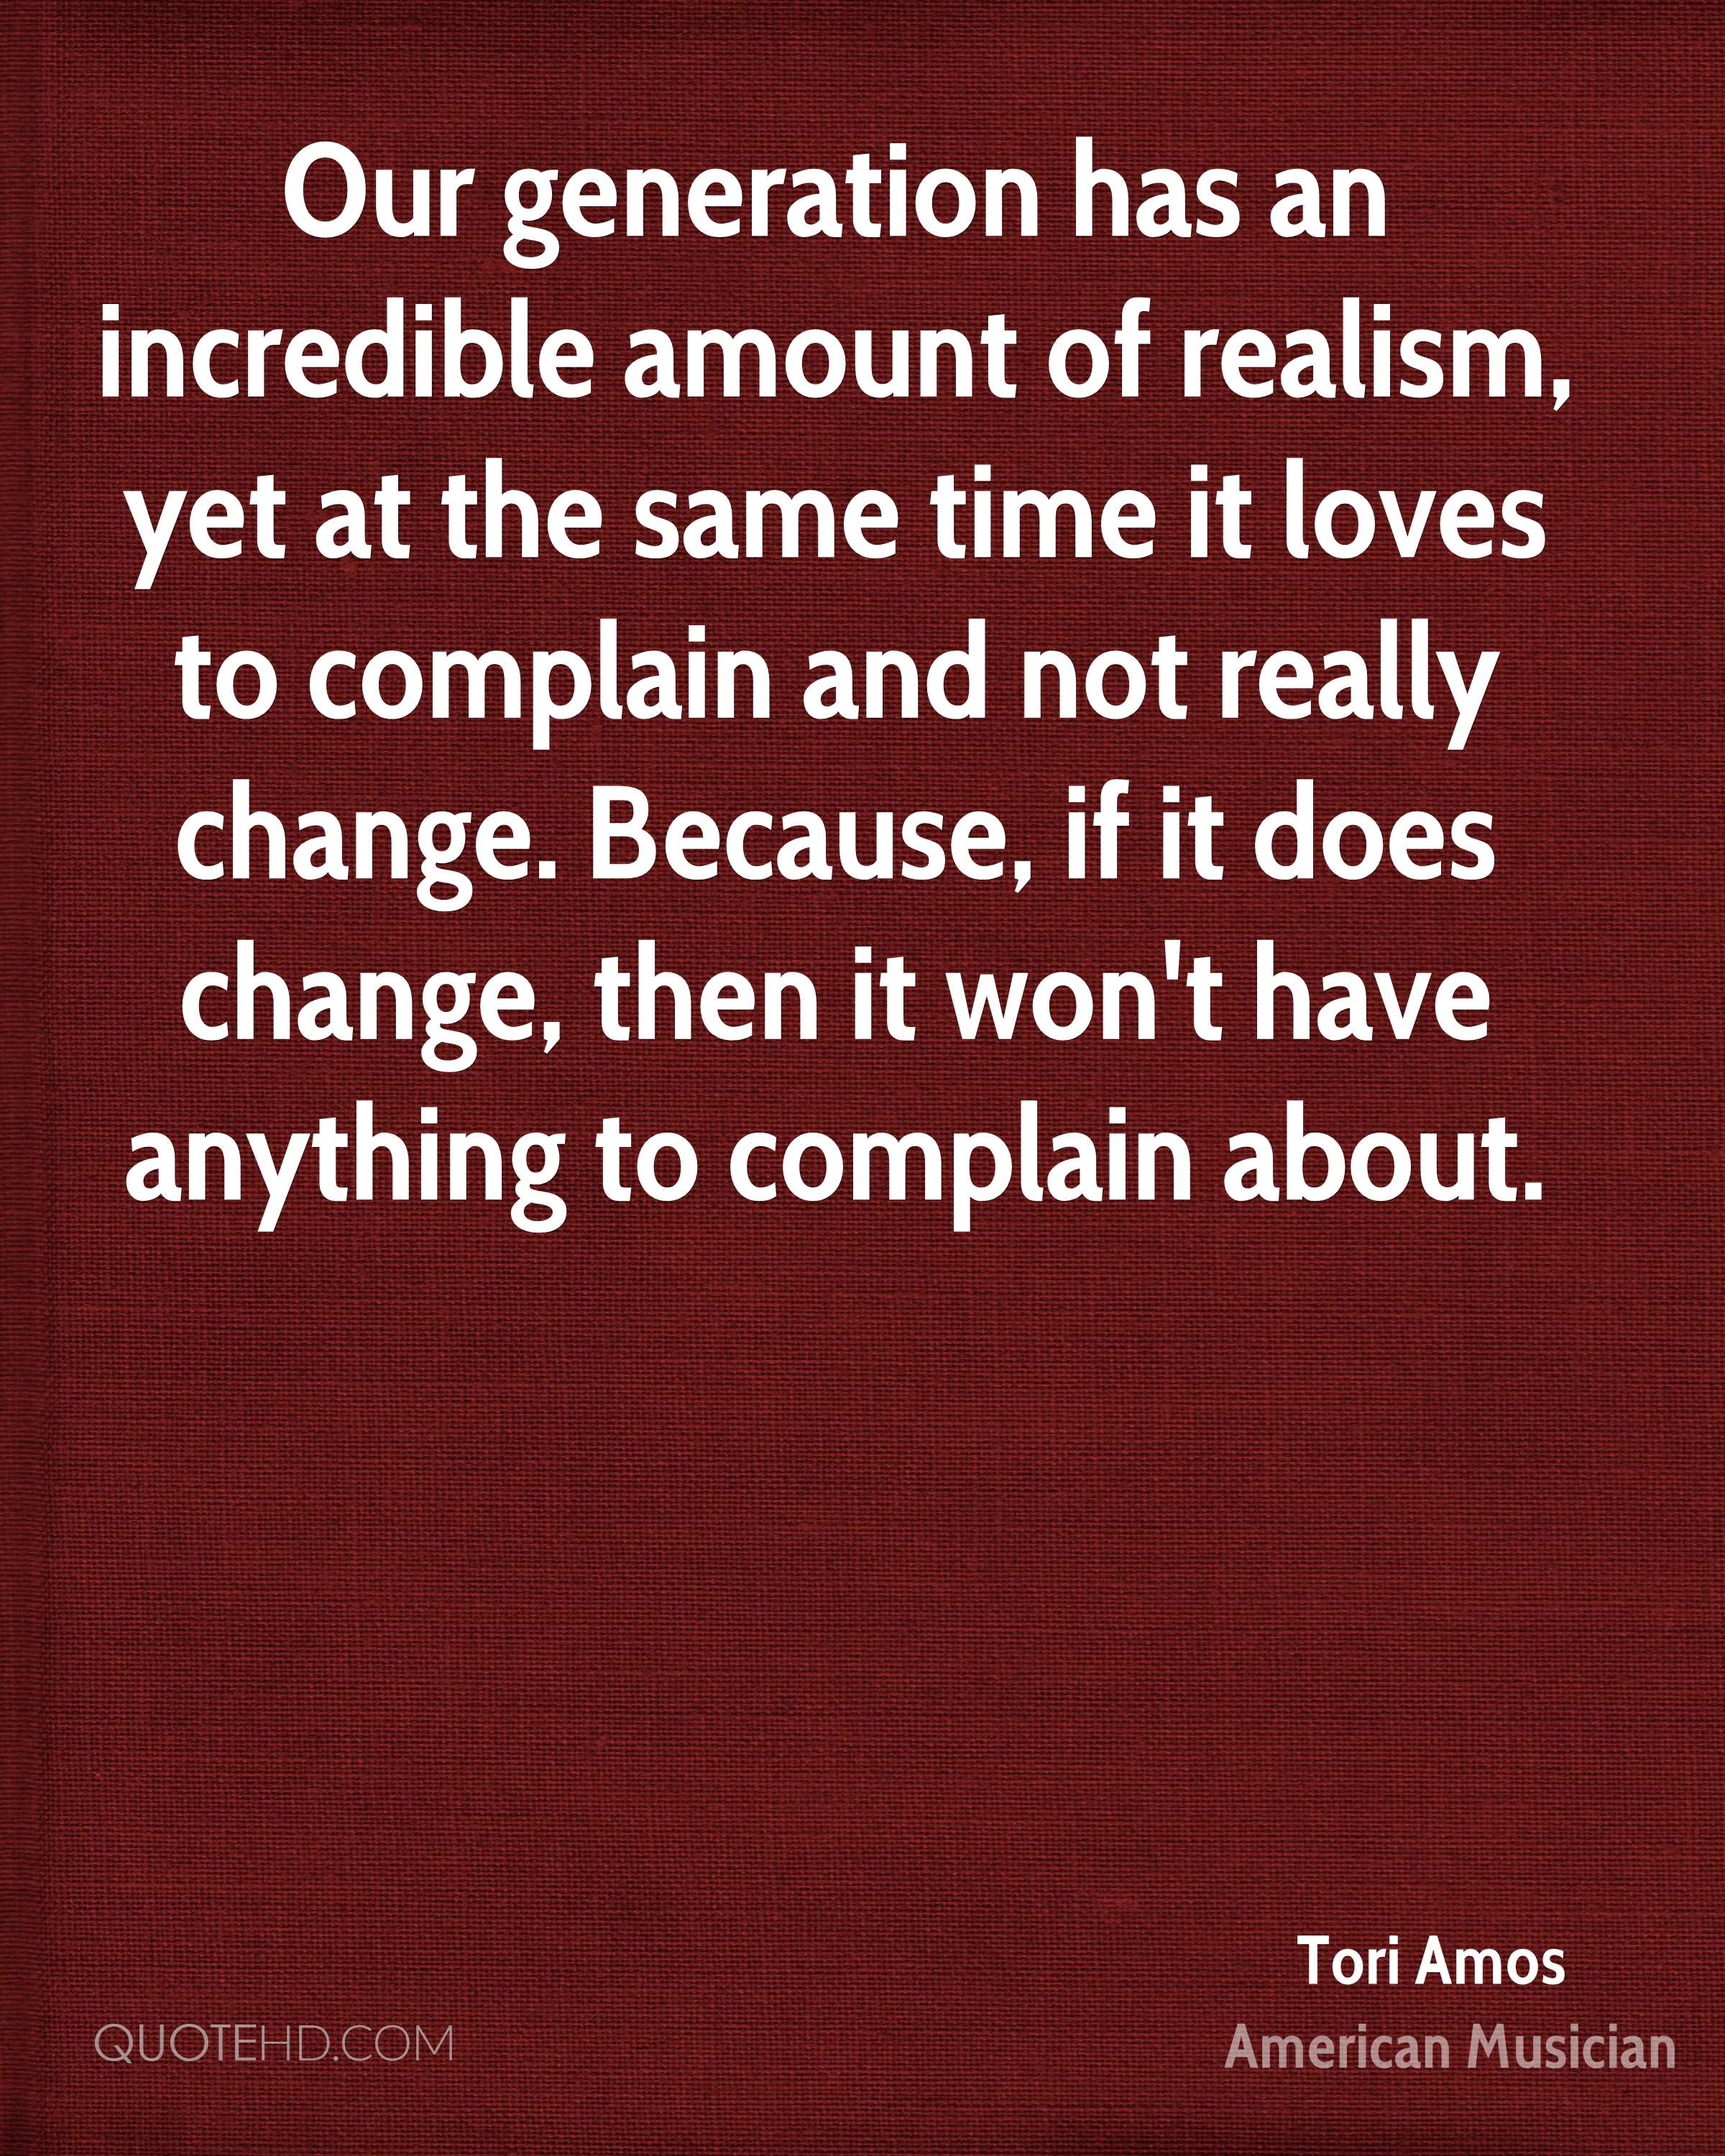 Our generation has an incredible amount of realism, yet at the same time it loves to complain and not really change. Because, if it does change, then it won't have anything to complain about.